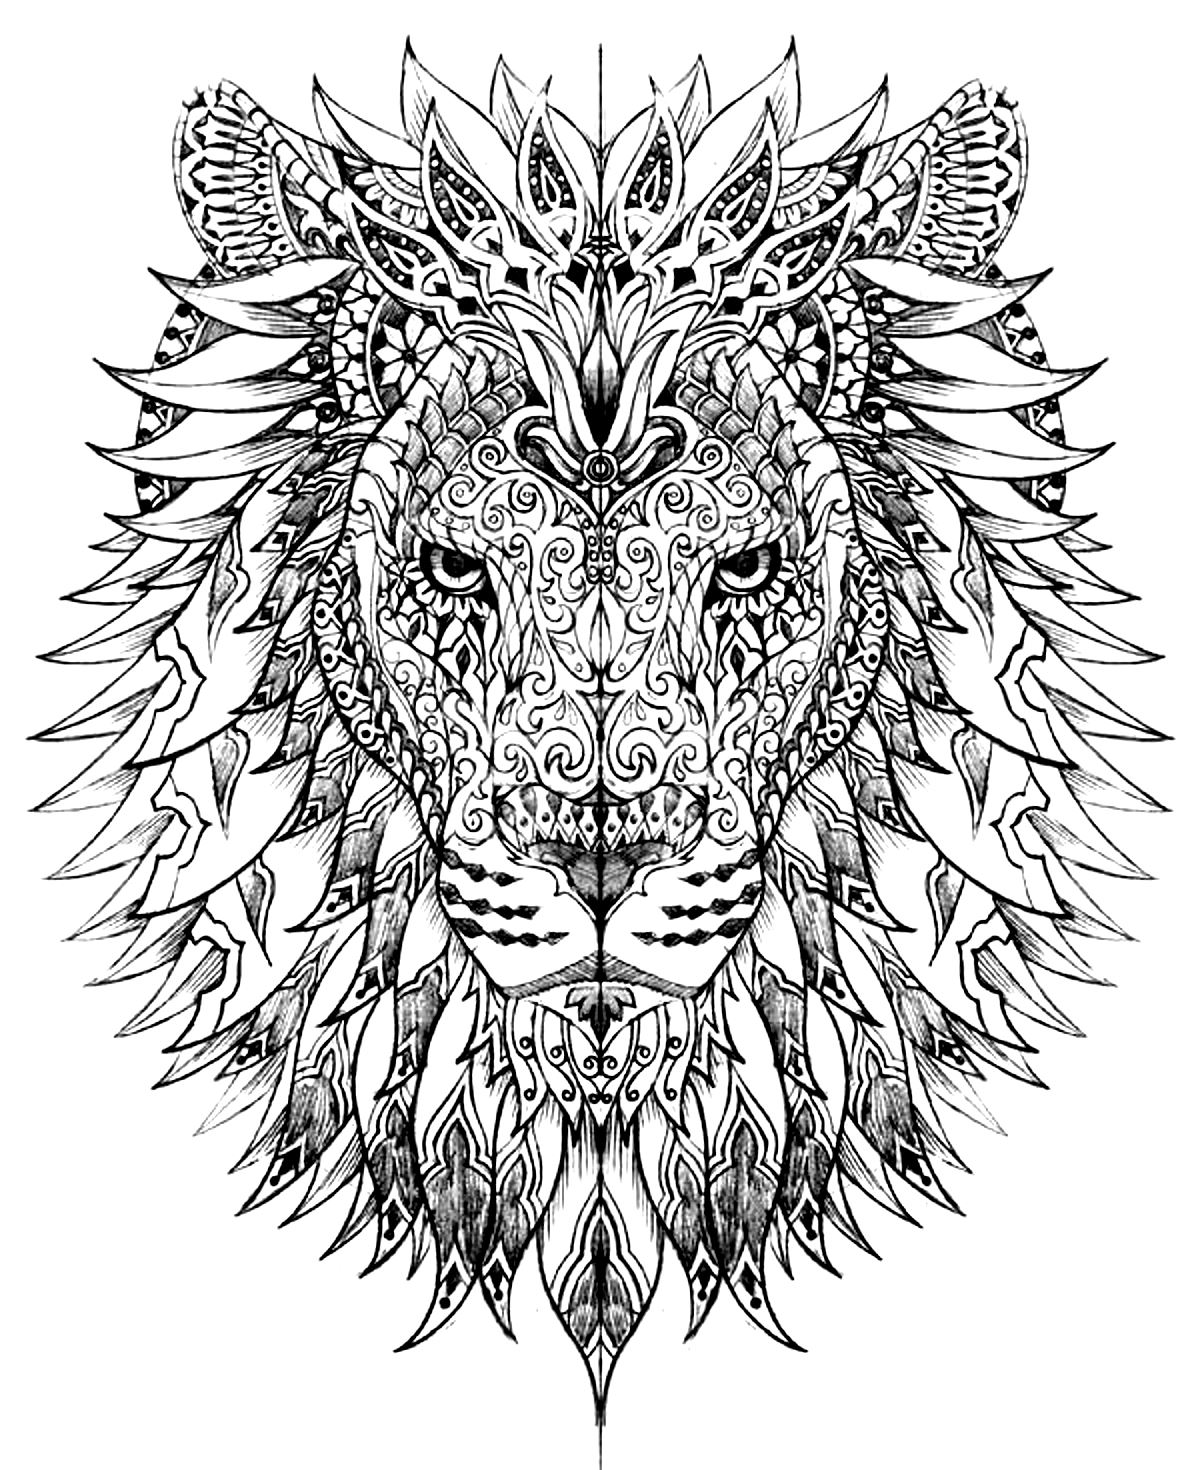 lion head drawn with very smart and harmonious patterns from the gallery animals